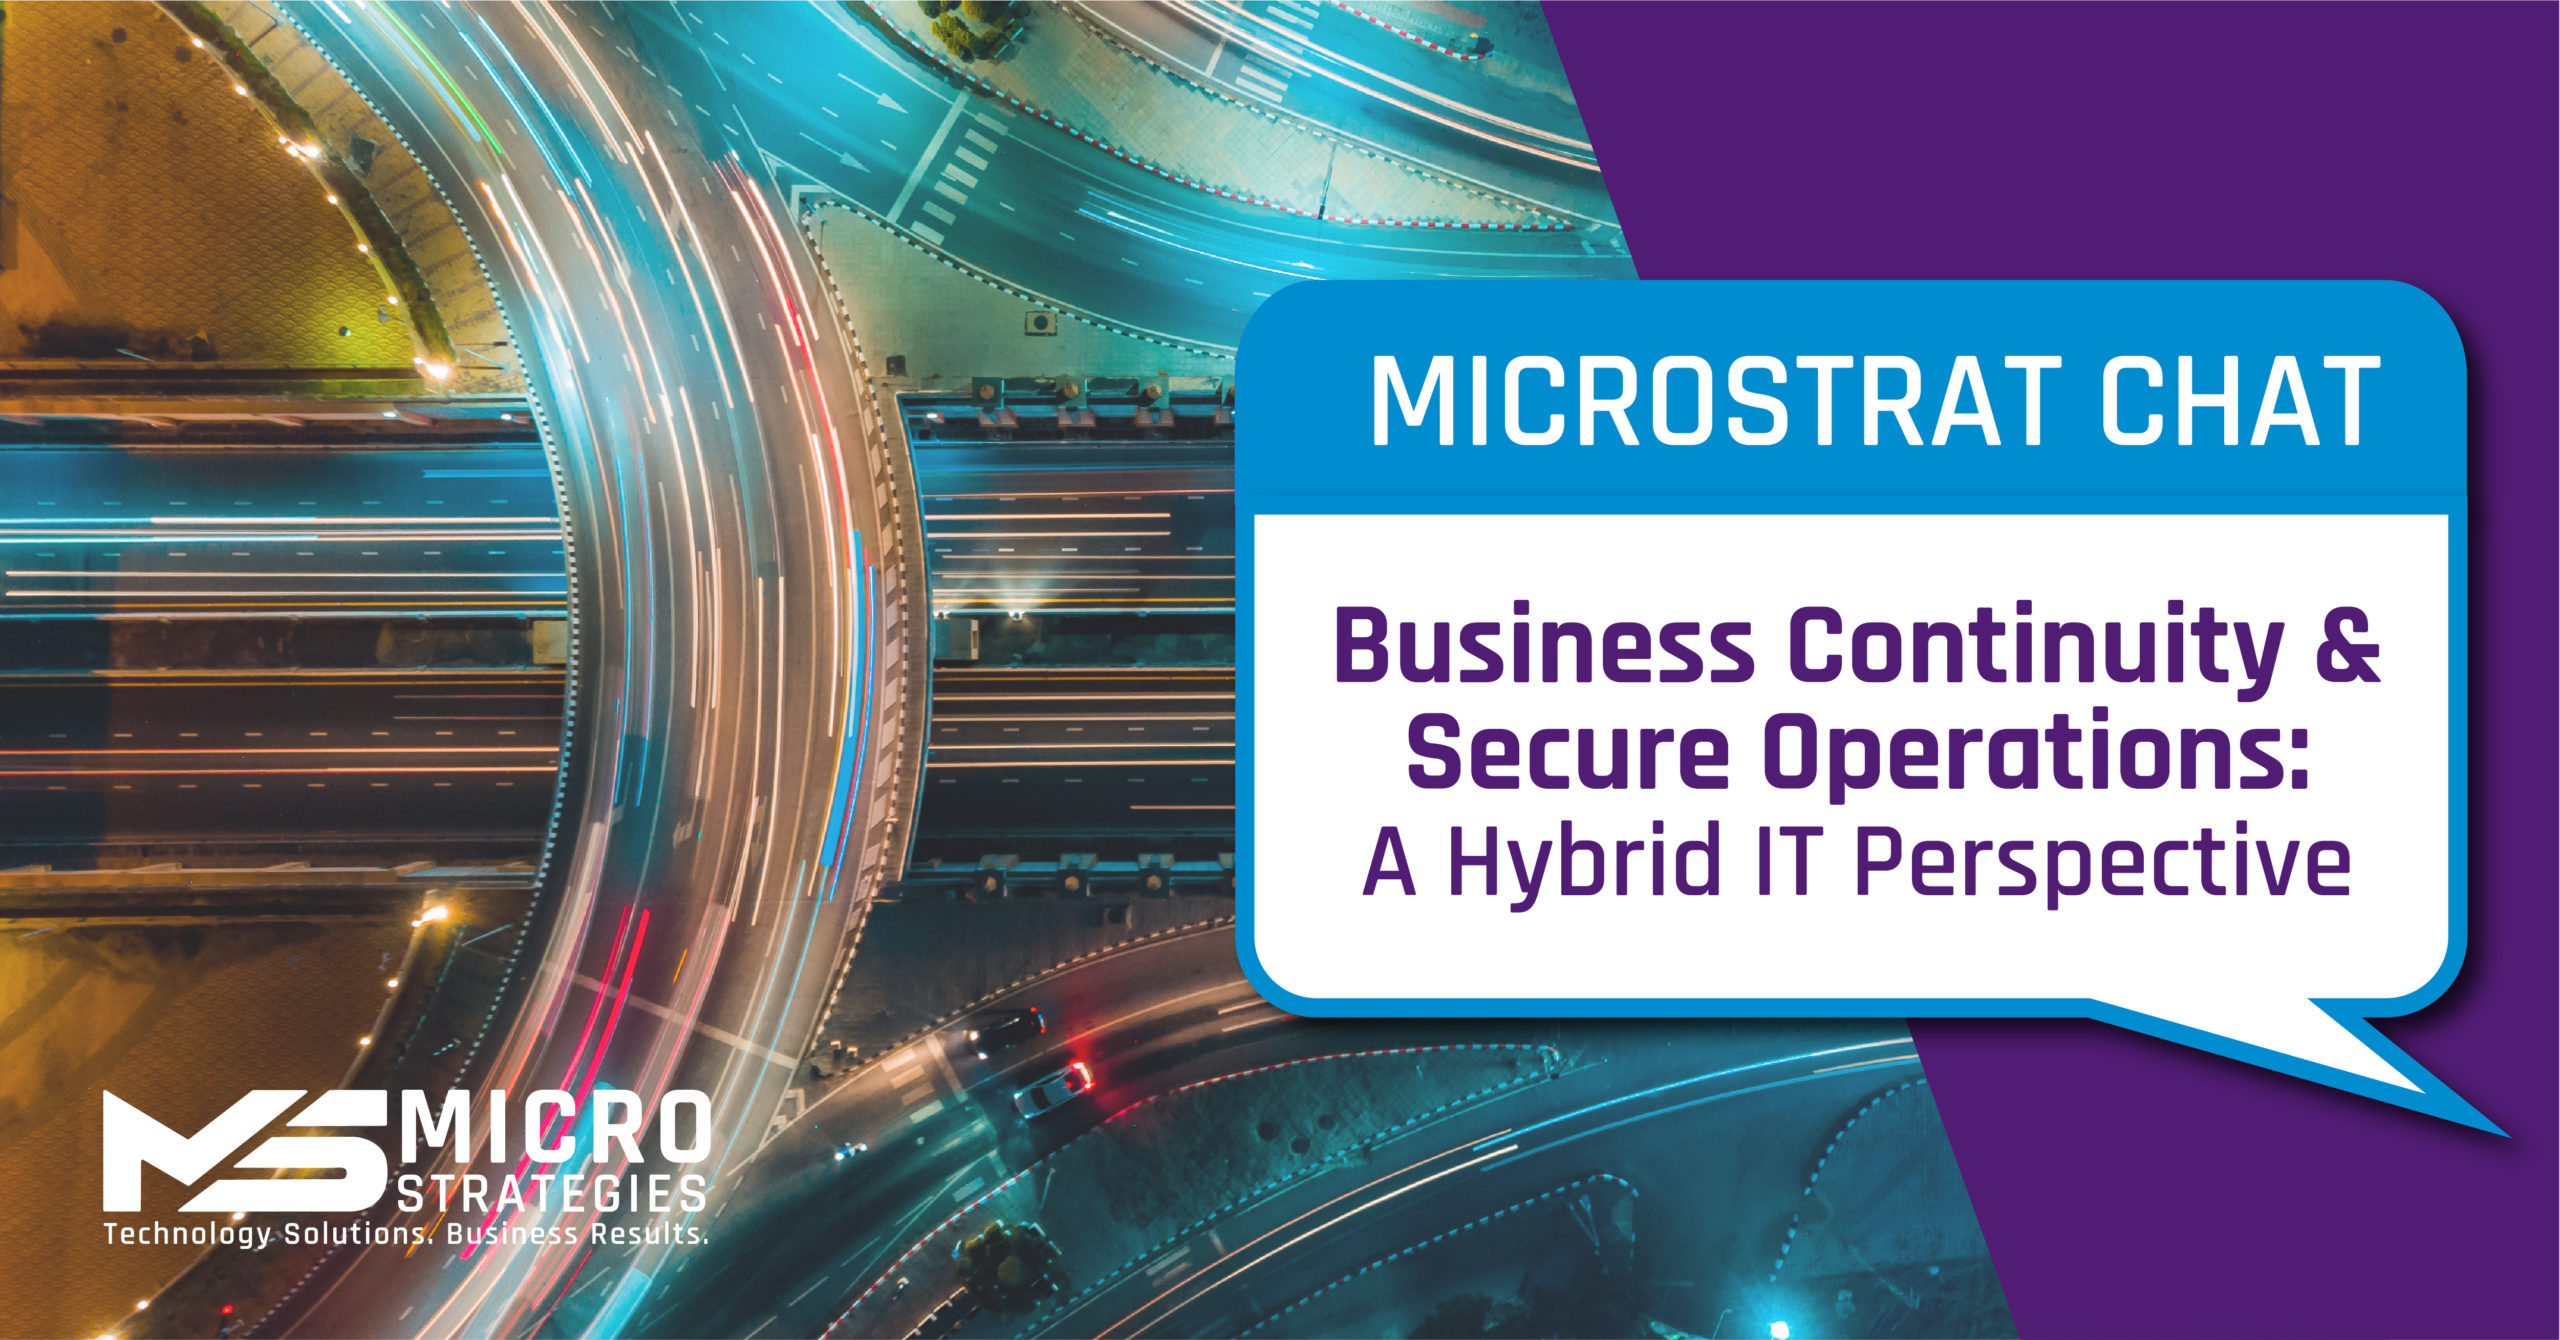 Business Continuity & Secure Operations: A Hybrid IT Perspective